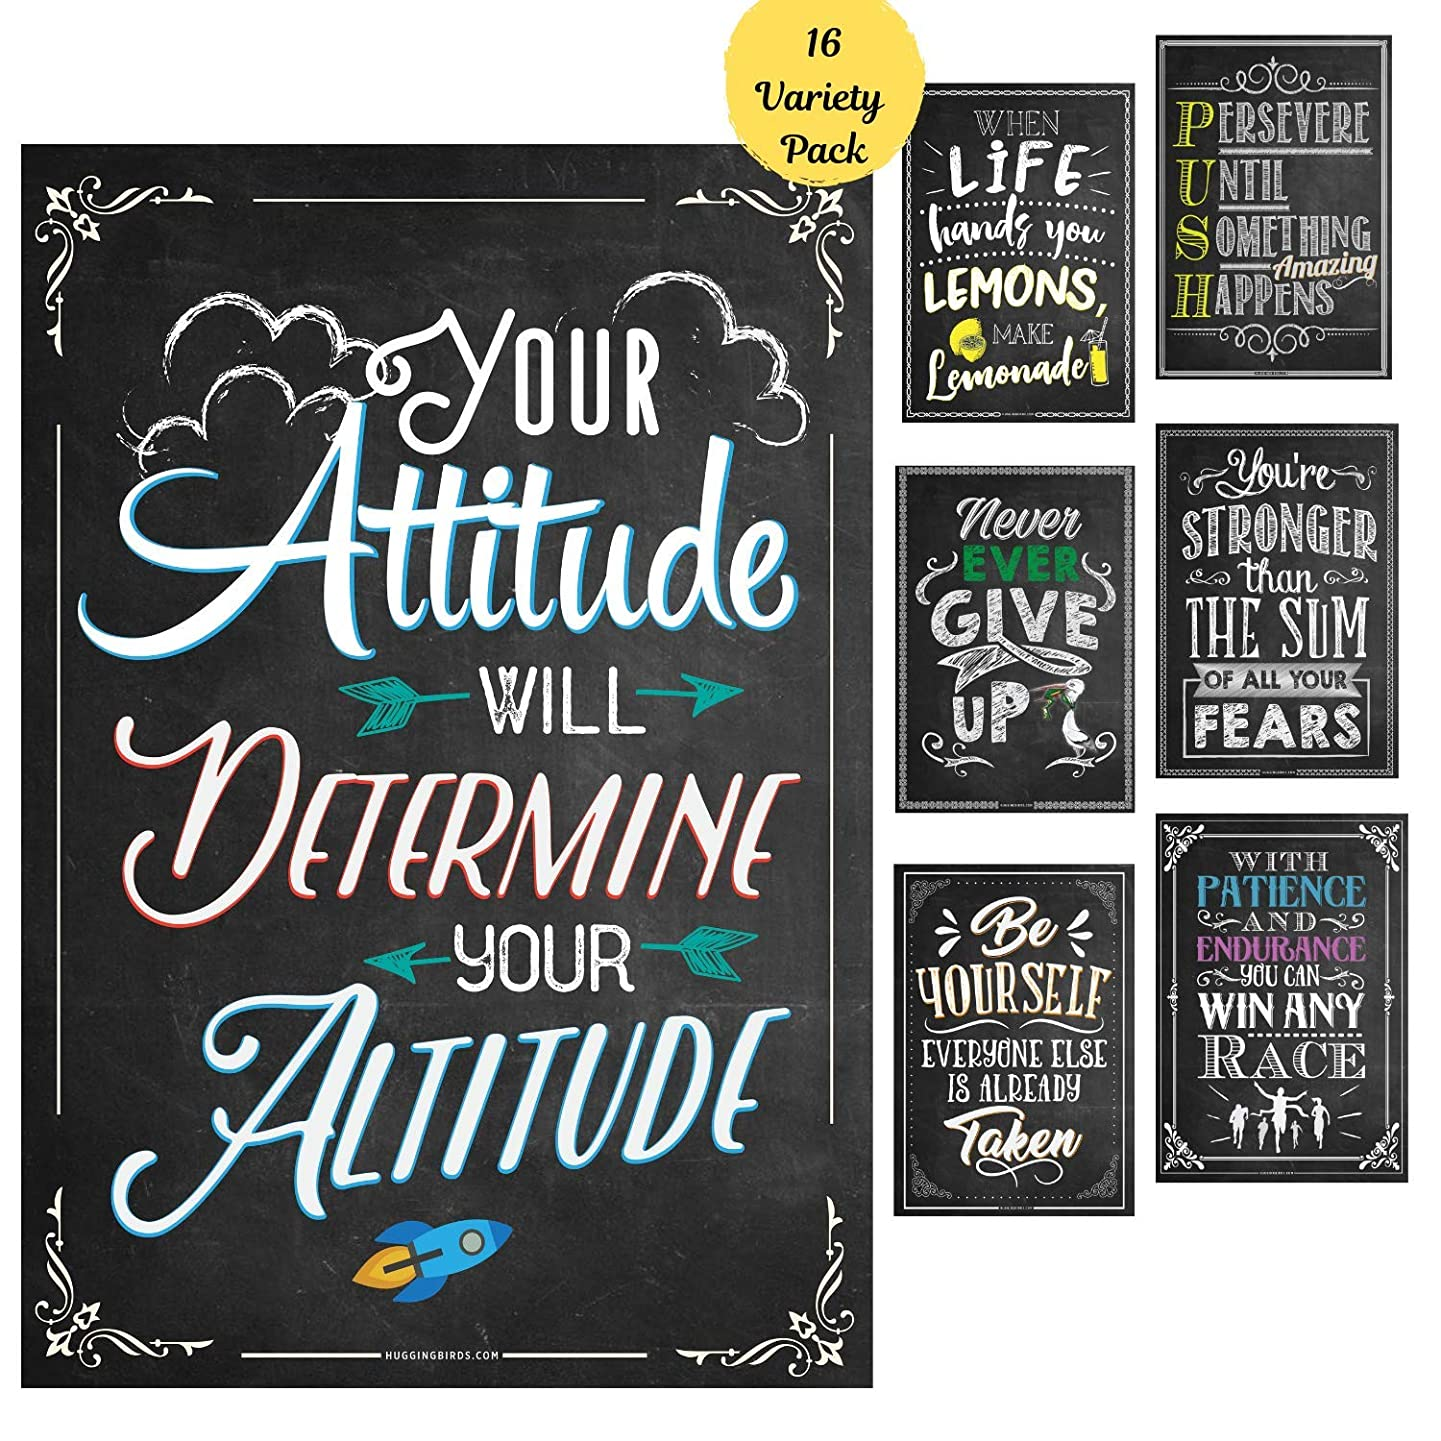 16 Motivational Classroom Posters| Motivational Quotes for Classroom Decorations, Bulletin Board Decorations, Teachers, Counselors| Laminated Posters (13 x 19 inches)